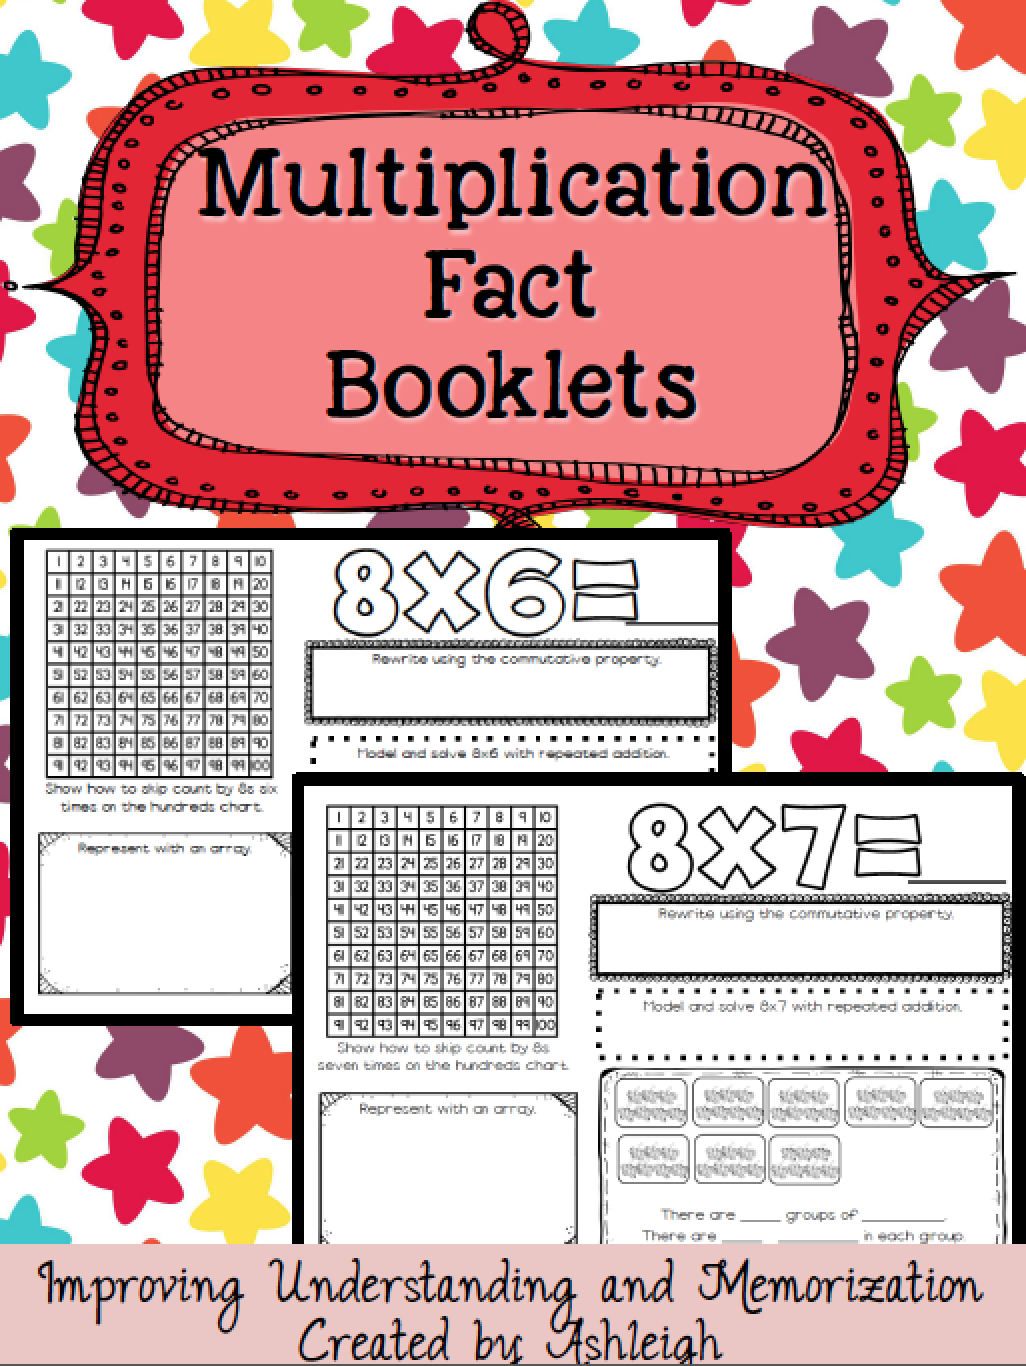 Multiplication Fact Booklets Help Students Learn Their throughout Printable Multiplication Booklets